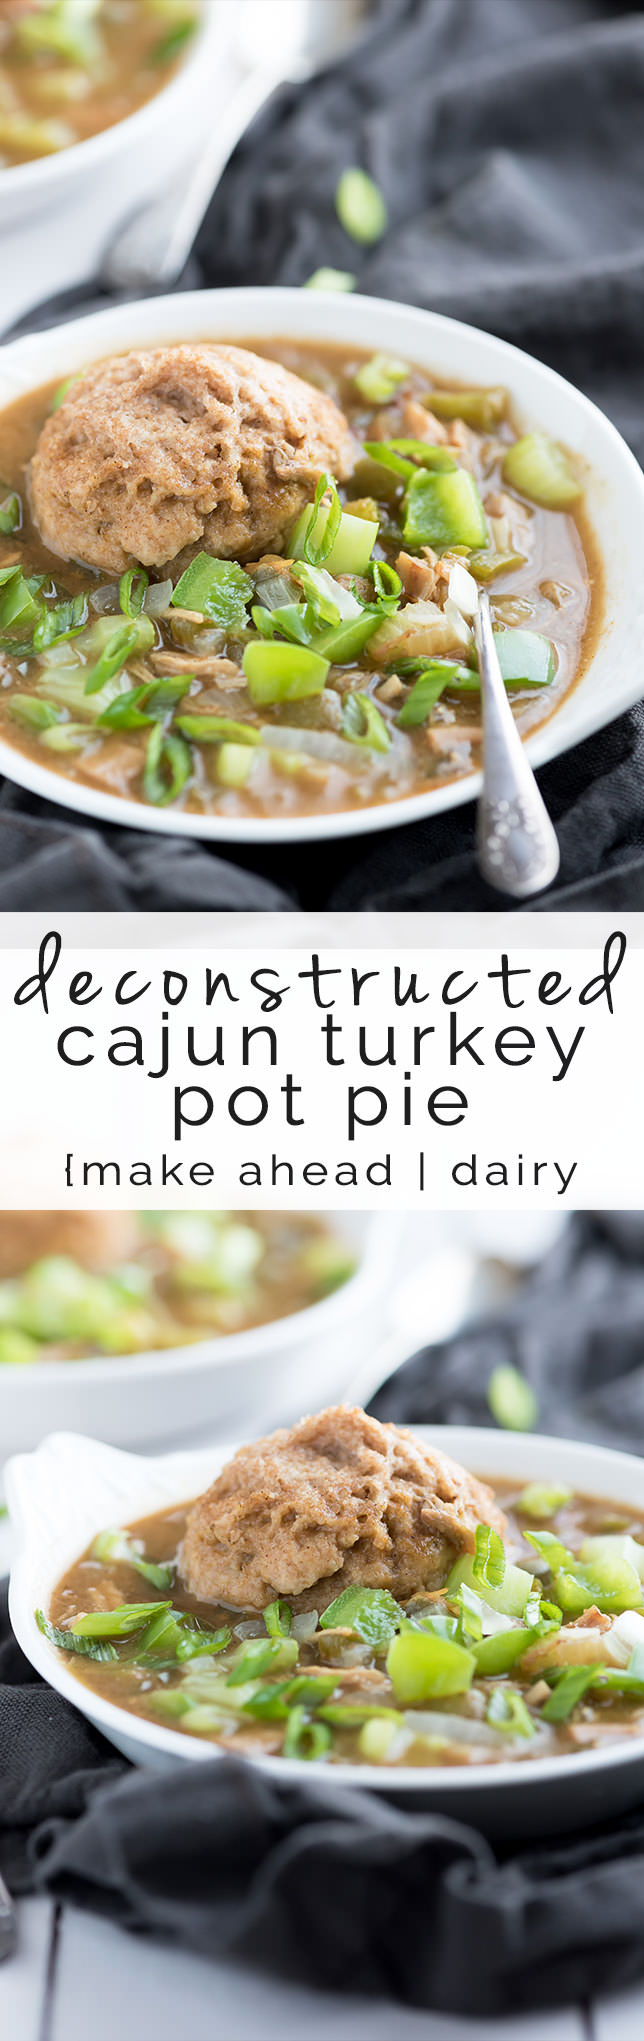 popcorn easy cajun jambalaya cajun fried chicken cajun turkey pot pie ...